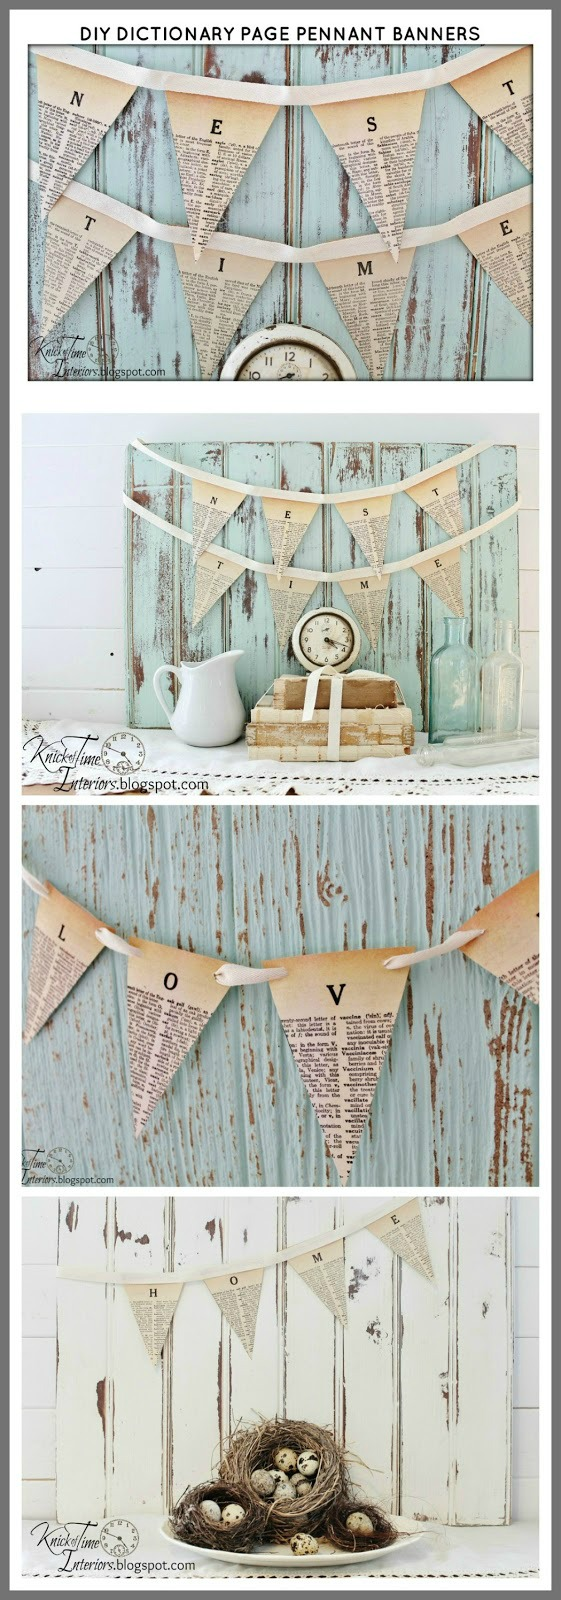 Free Printable Dictionary Pennant Banner | www.knickoftime.net